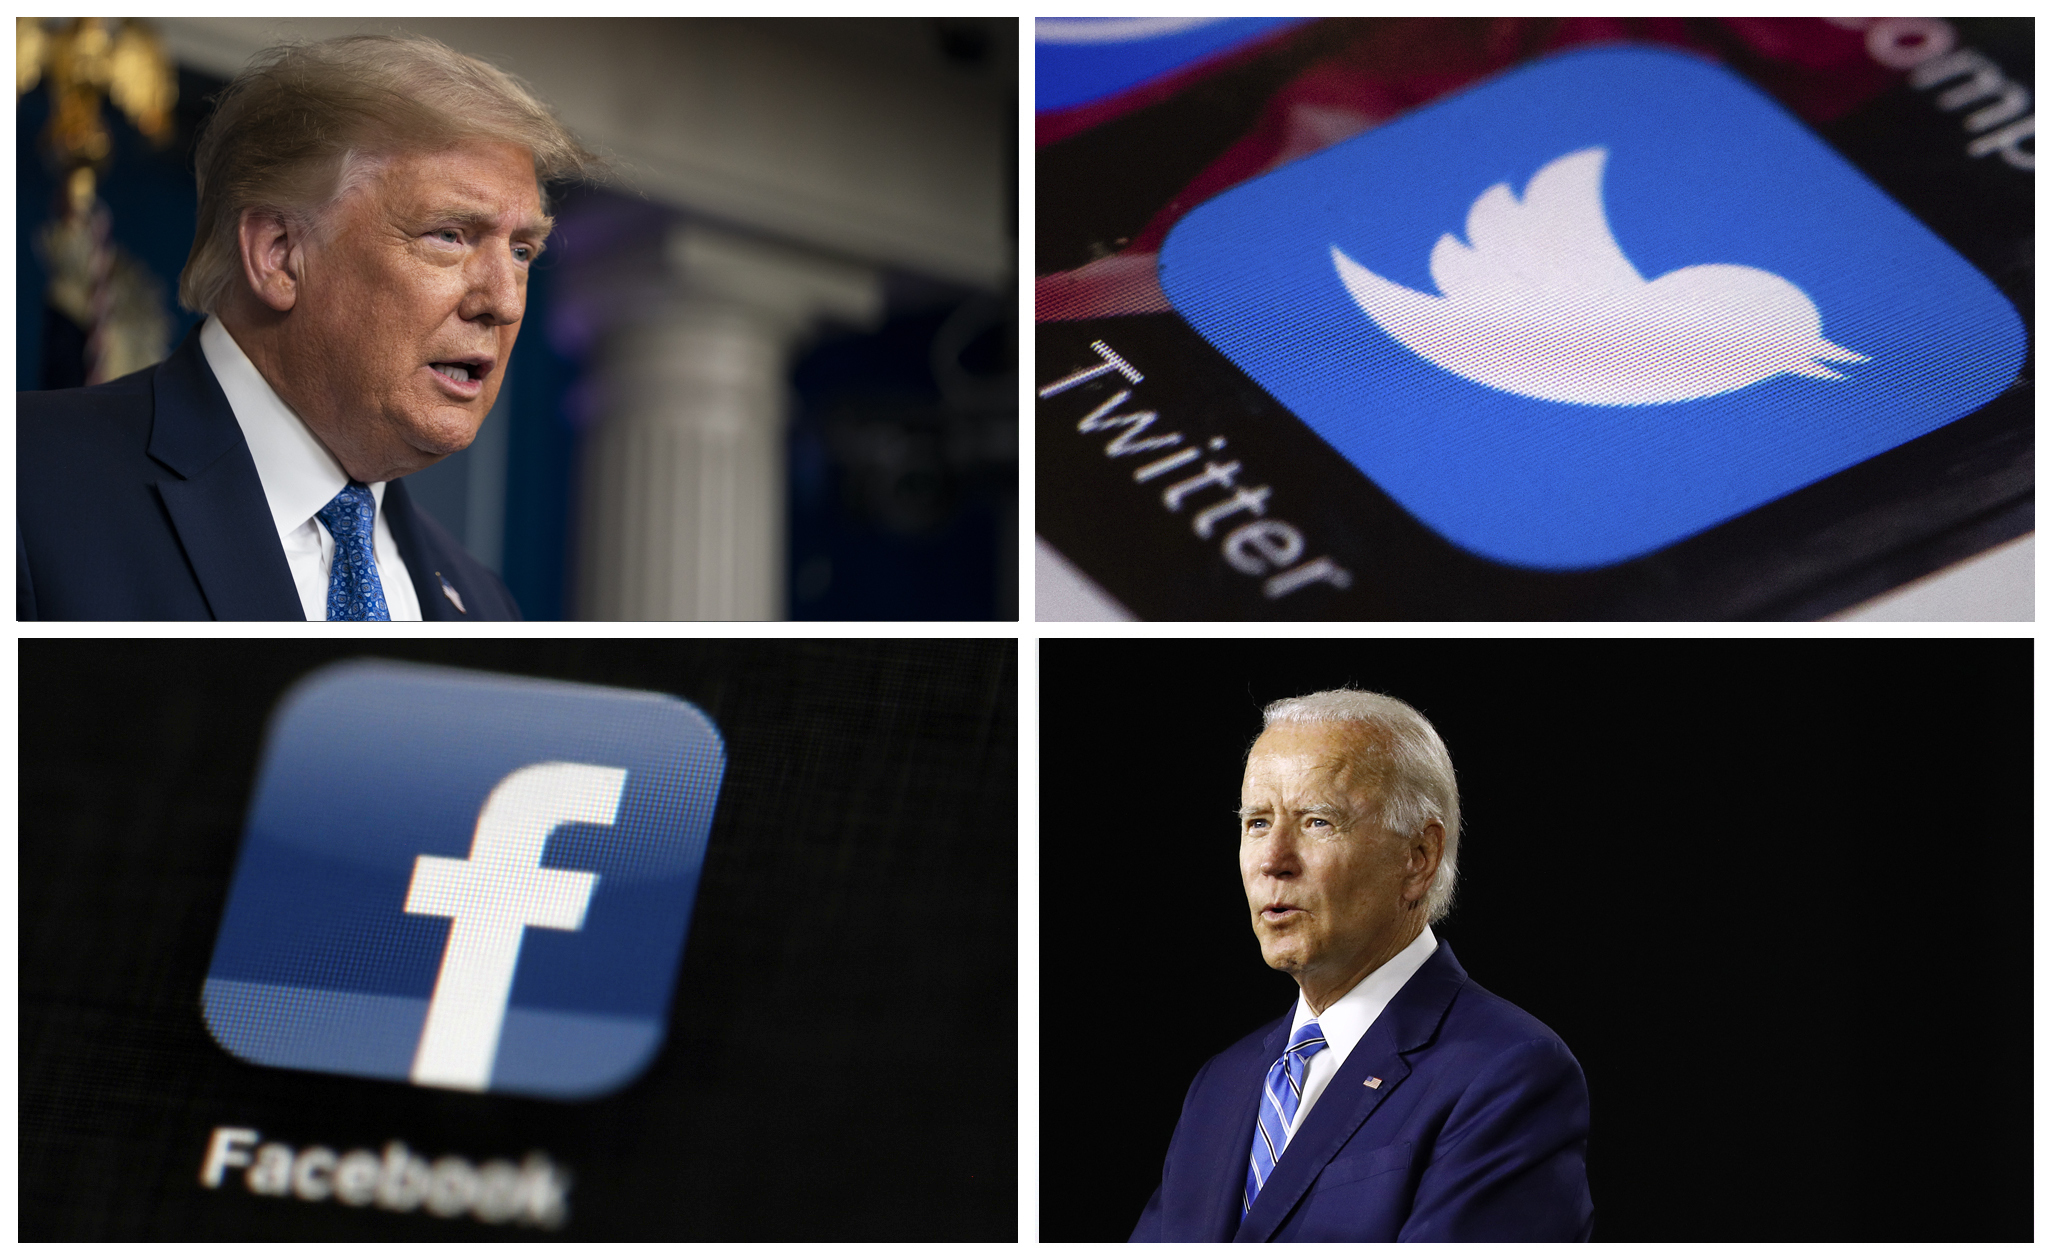 Facebook and Twitter are targets in Trump and Biden election ads thumbnail